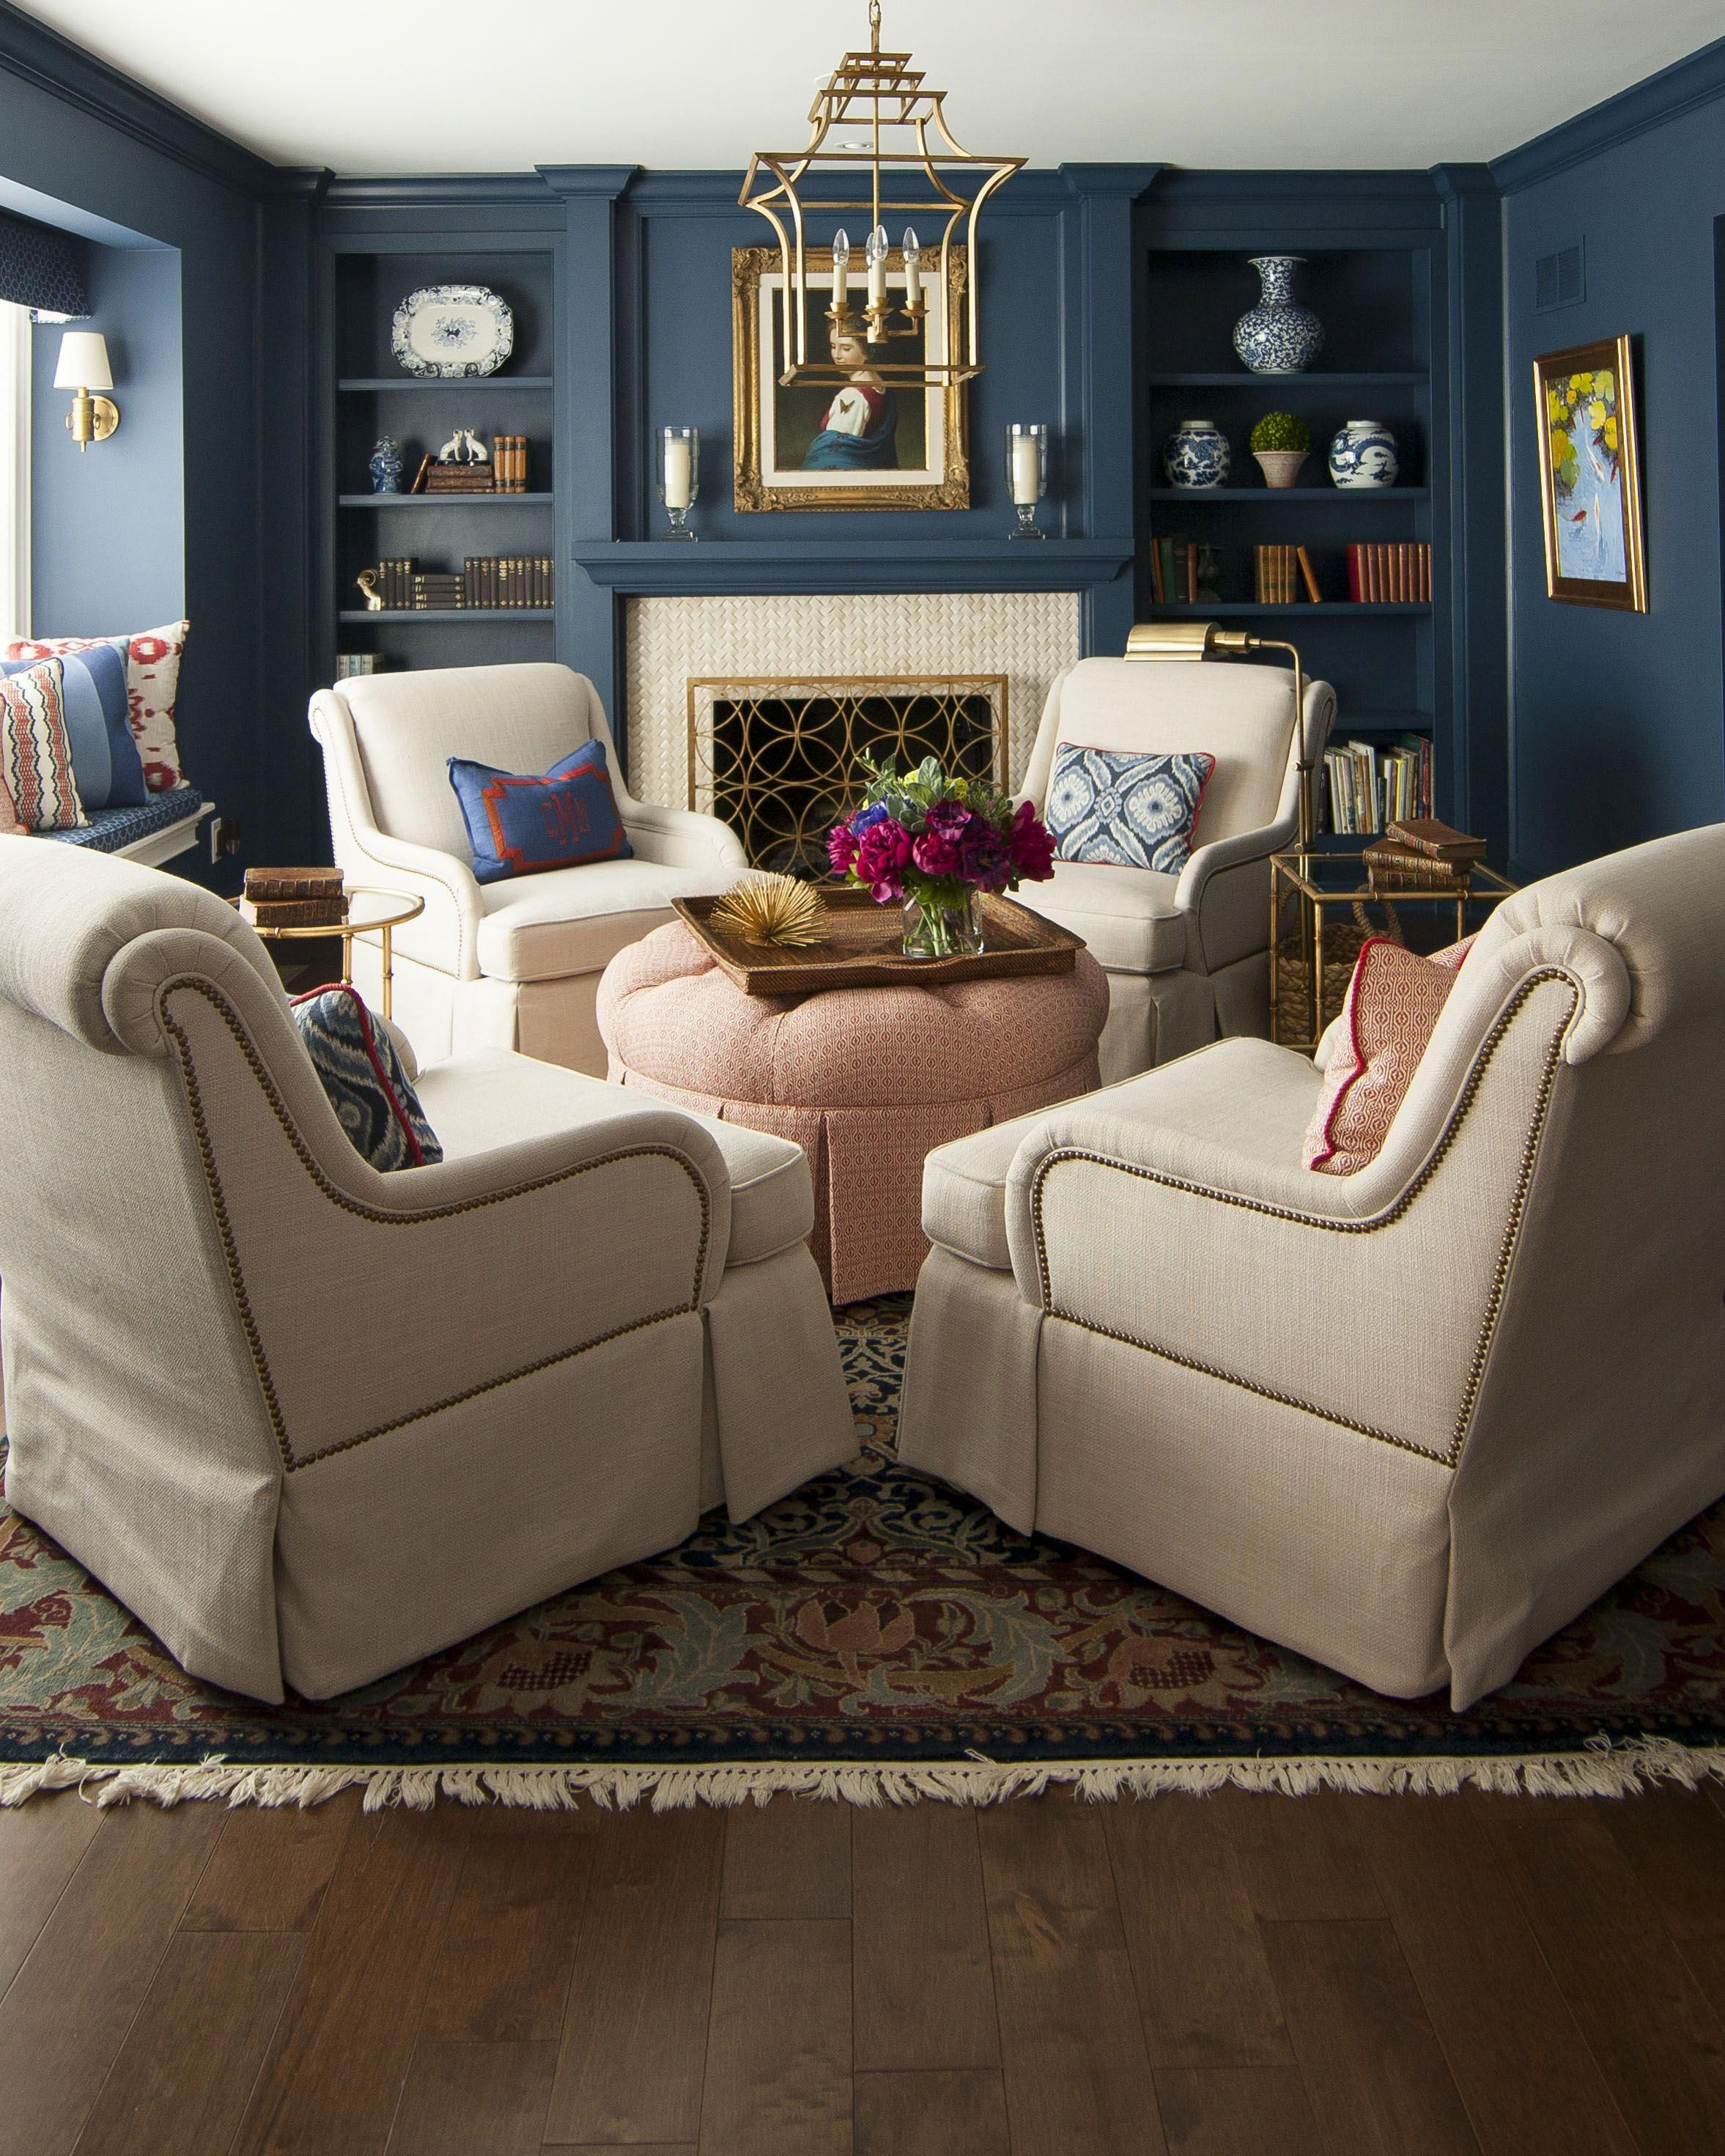 Strange Four Upholstered Swivel Chairs Around A Round Ottoman Dailytribune Chair Design For Home Dailytribuneorg